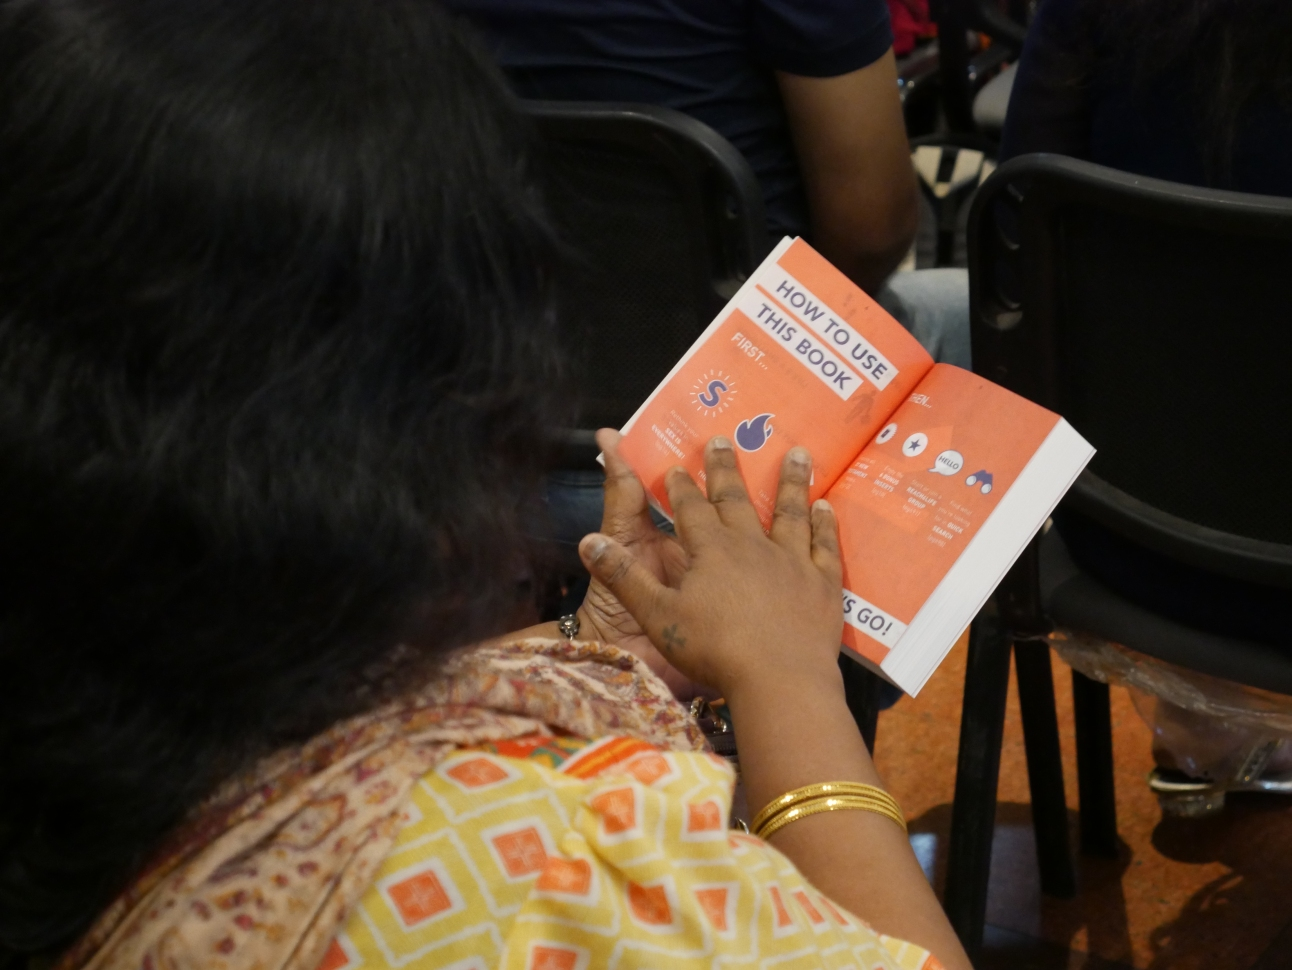 The seminar included materials to dive deep into learning